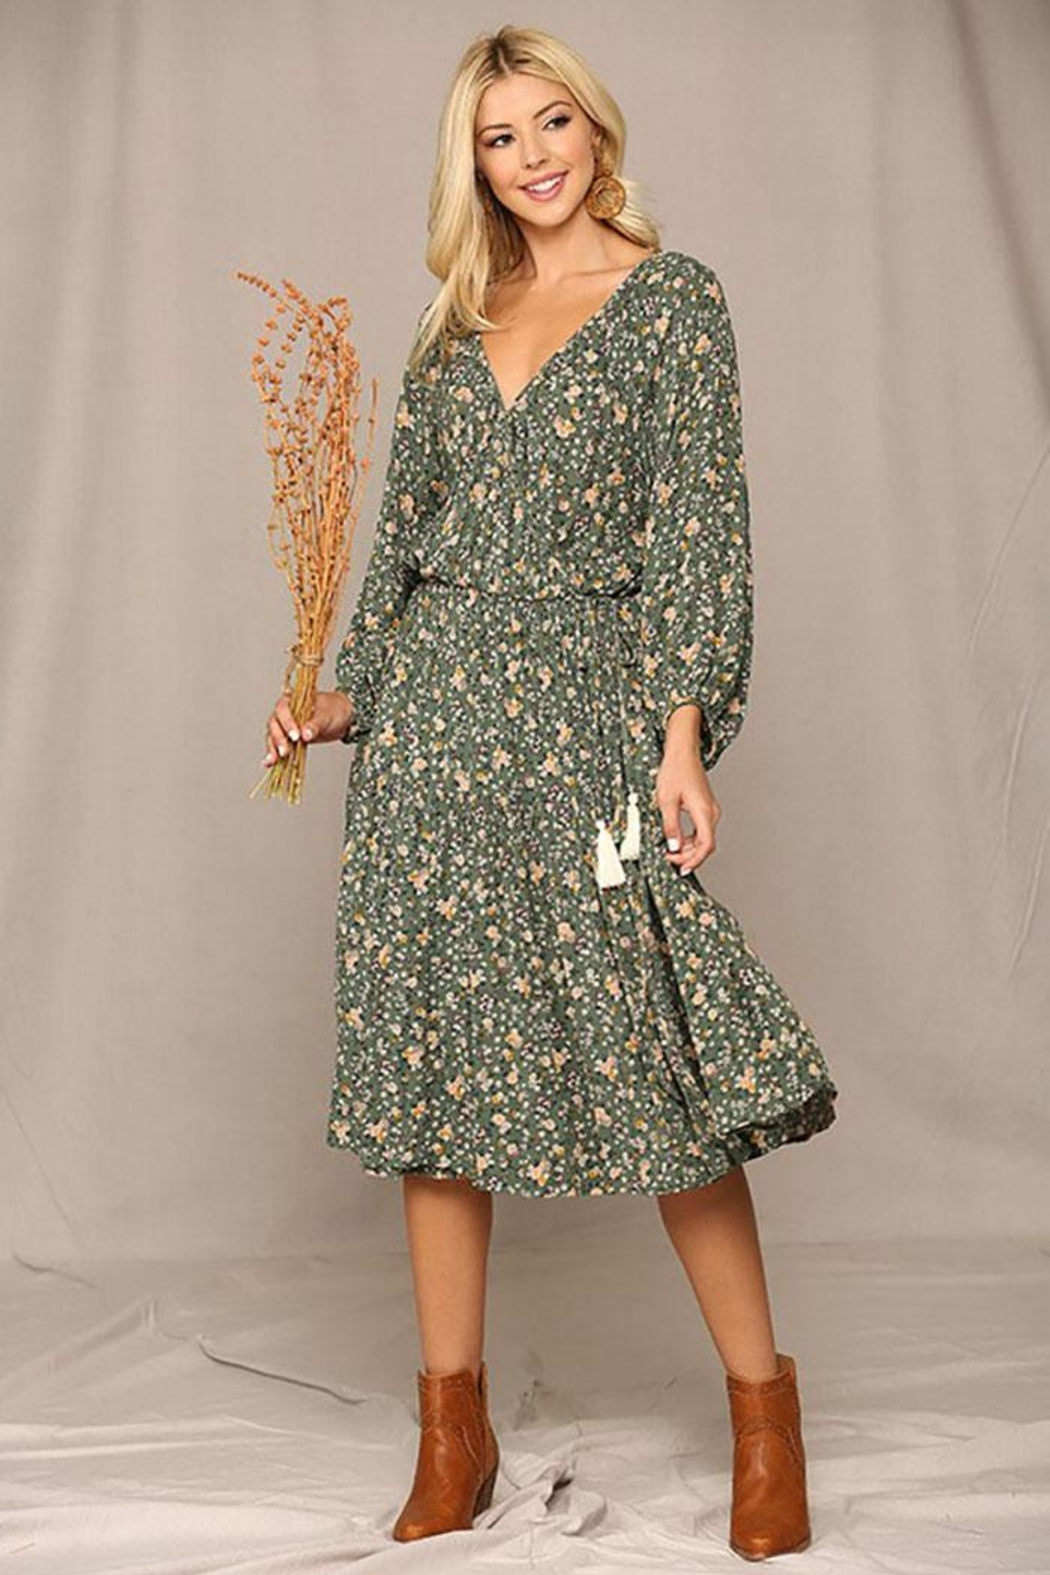 GiGiO Floral Puff Sleeve Wrap Midi Dress With Tassle Tie - Front Cropped Image